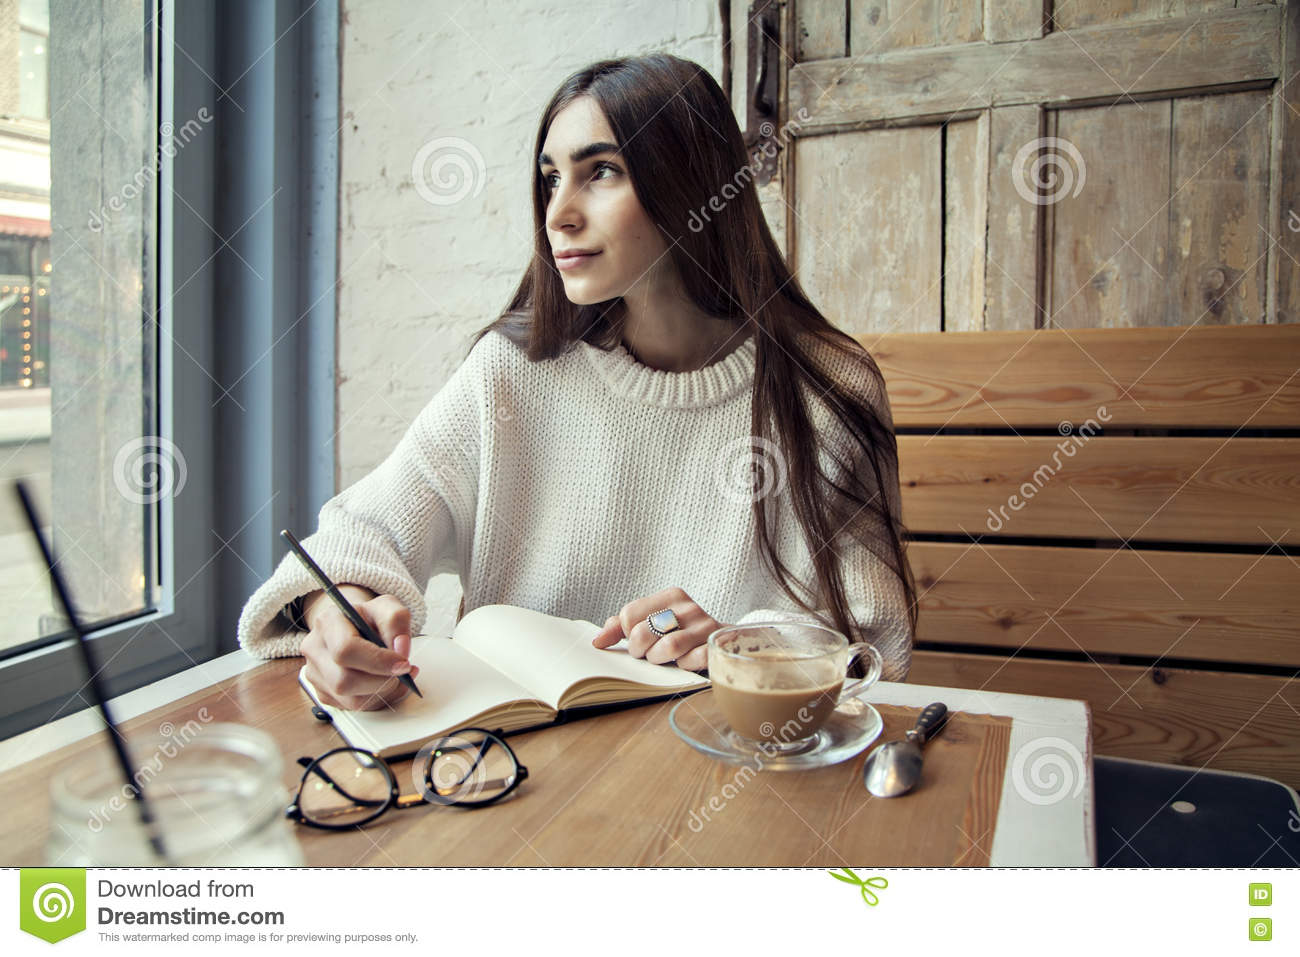 https://thumbs.dreamstime.com/z/young-hipster-girl-work-cafe-note-pad-cafe-near-window-lunch-time-coffee-70780561.jpg